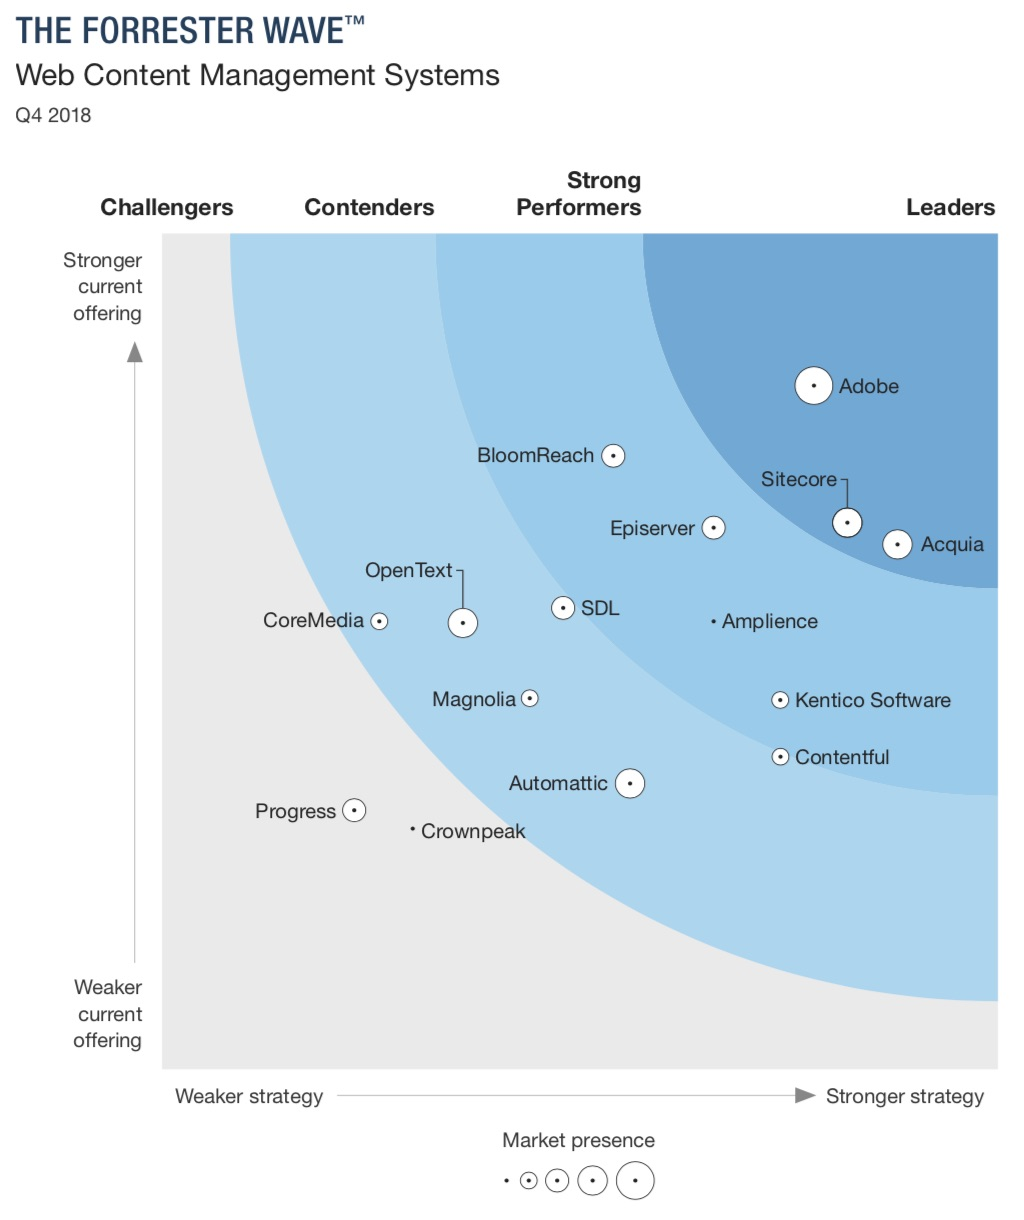 Acquia shown as a Leader together with Adobe and Sitecore